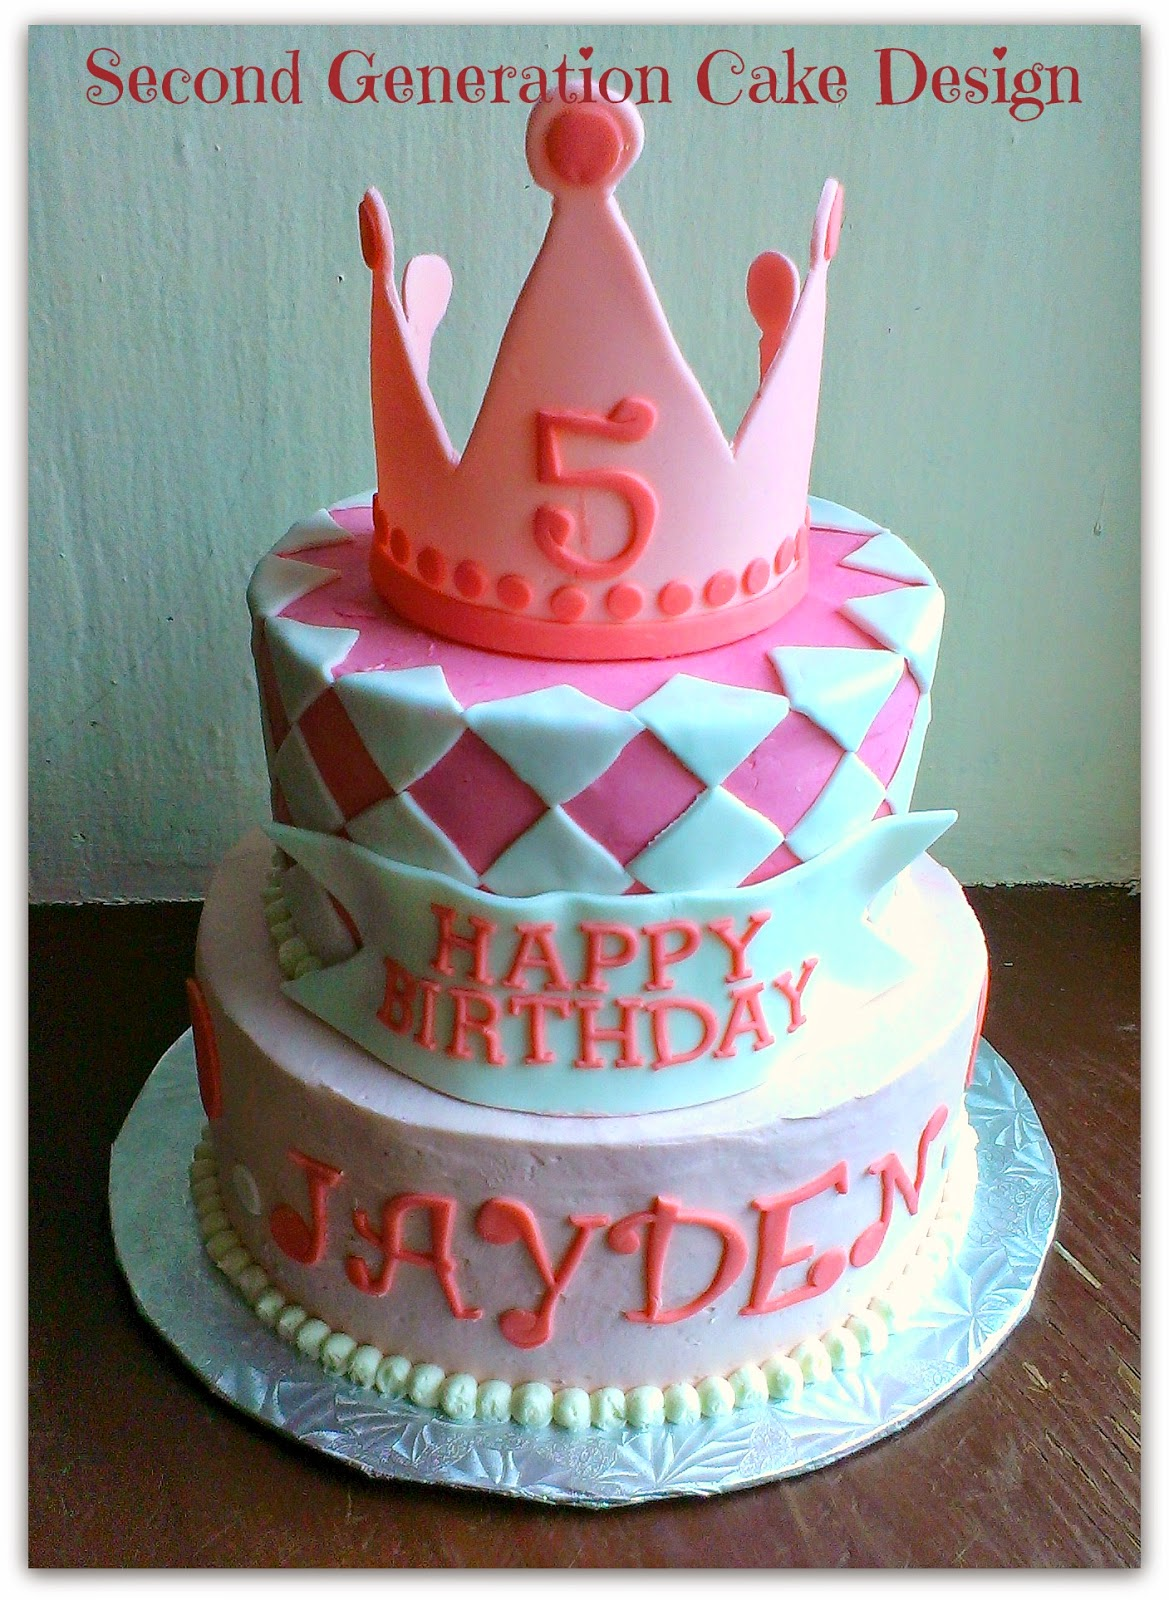 Cake Designs With Crown : Second Generation Cake Design NetworkedBlogs by Ninua